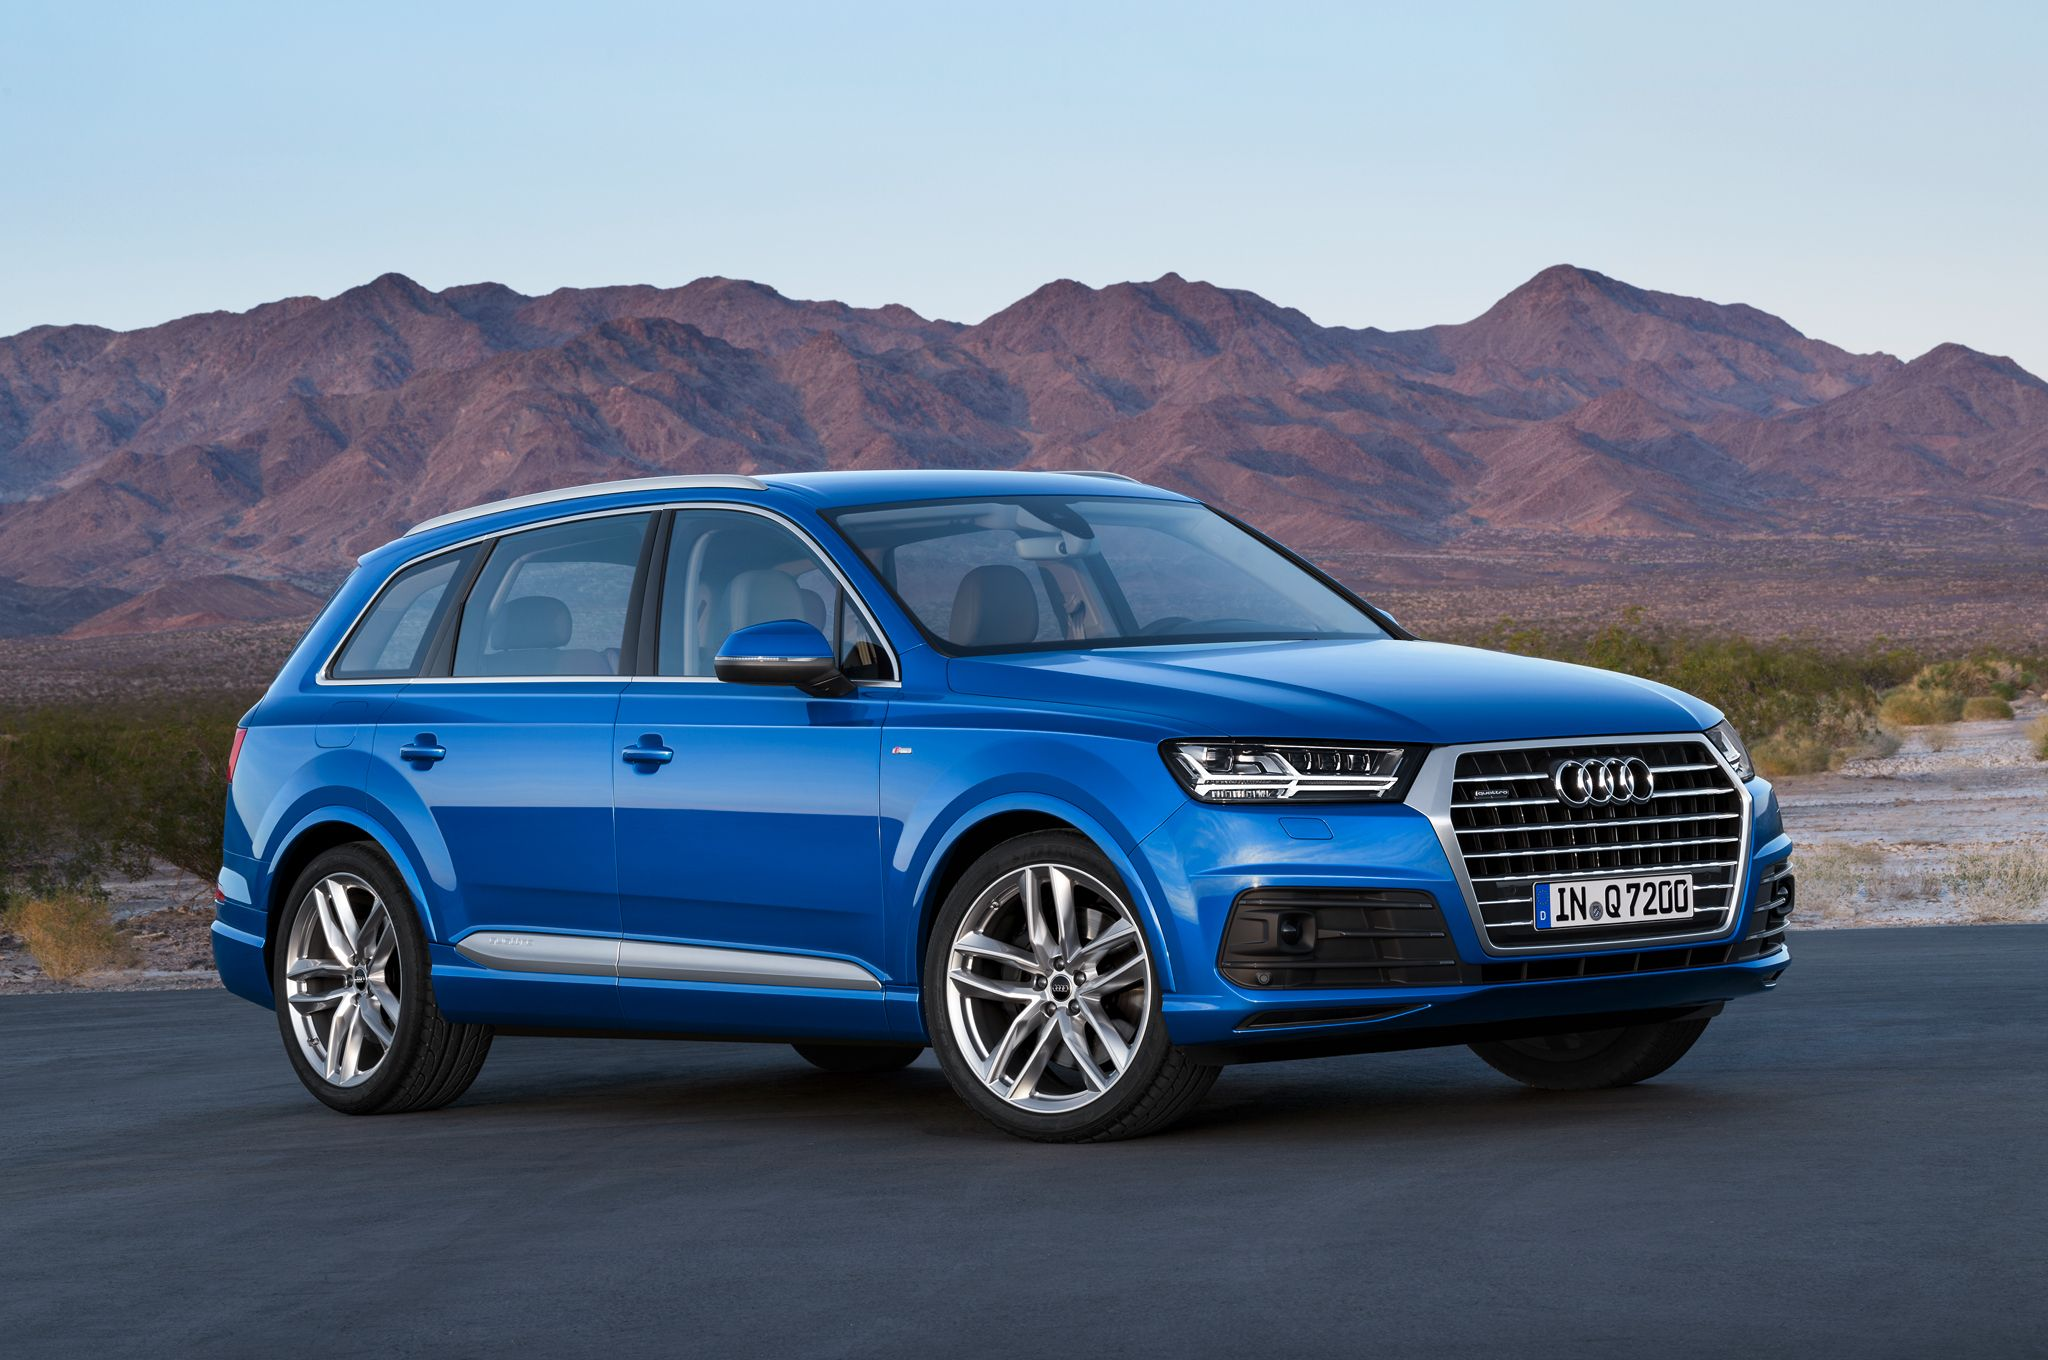 2017 Audi SQ7 TDI Diesel Price and Release Date